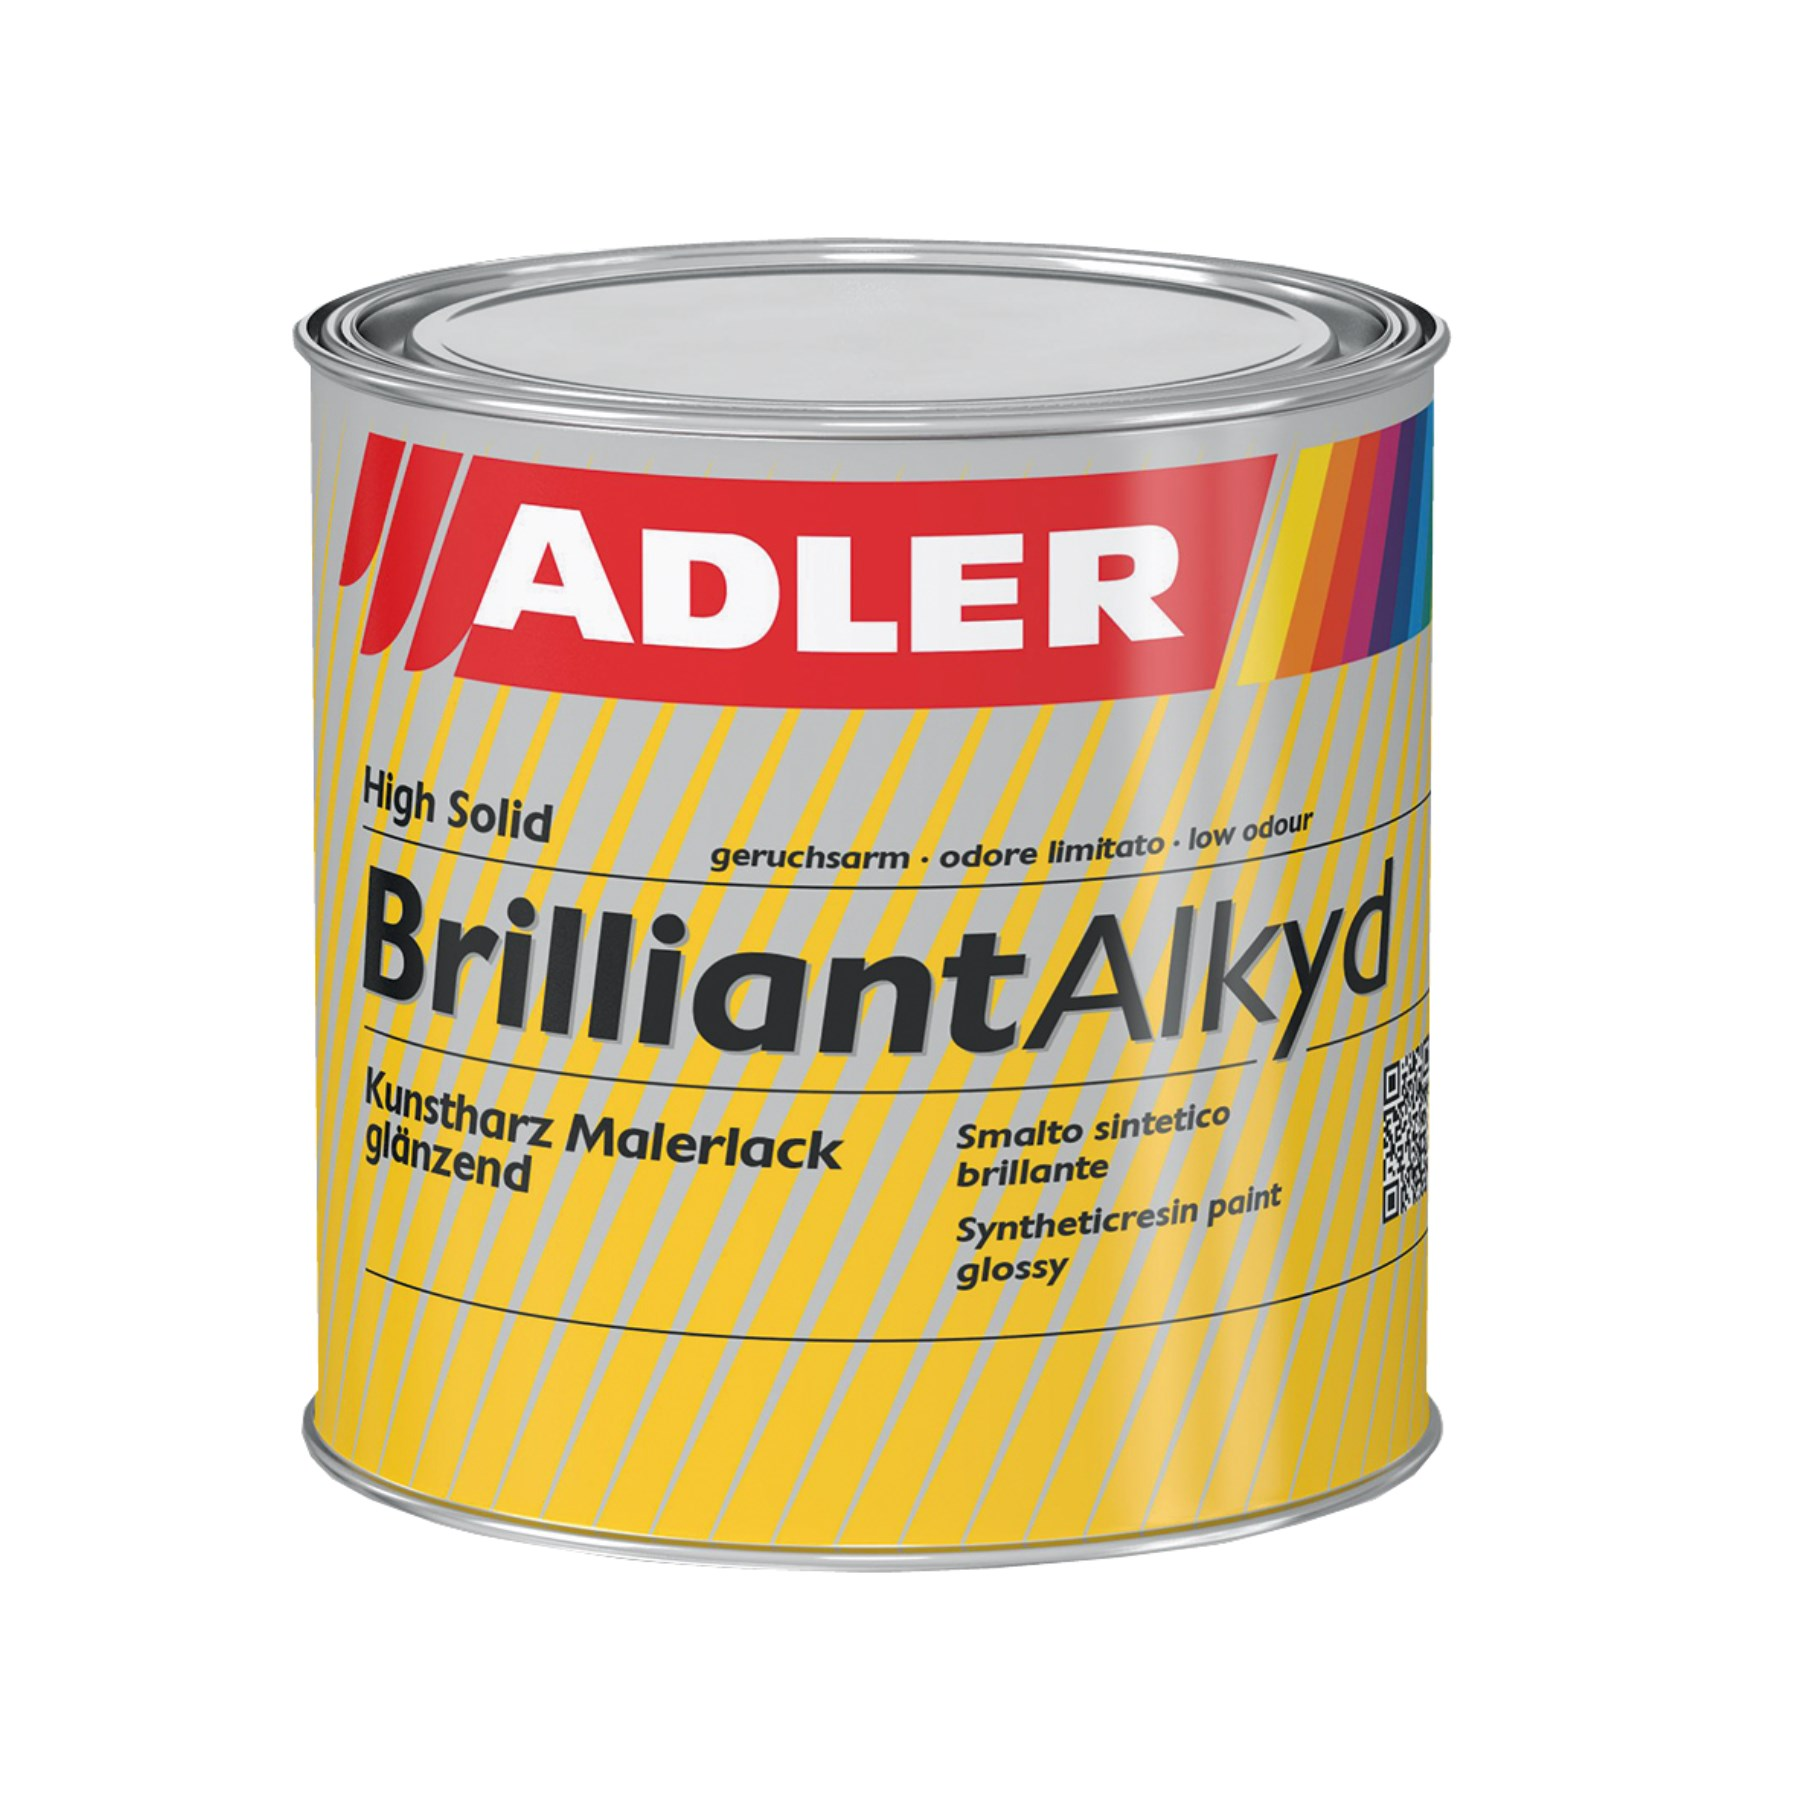 1095243 - Brilliant-Alkyd W 10 ws 750ml Basis zum Tönen